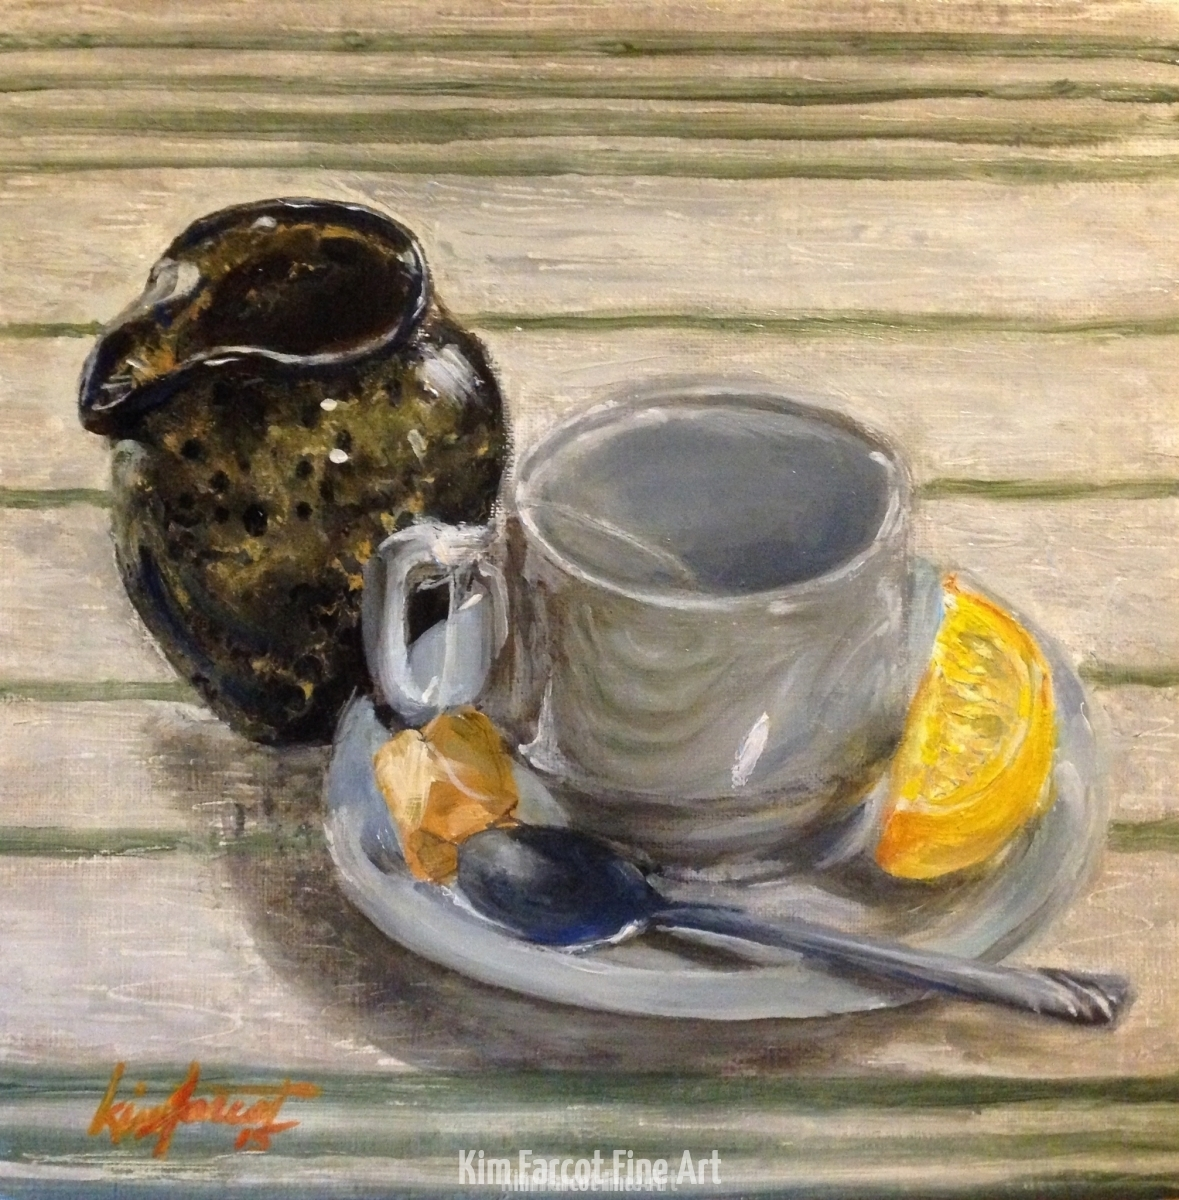 Tea Still Life, private collection, Fairfax, VA